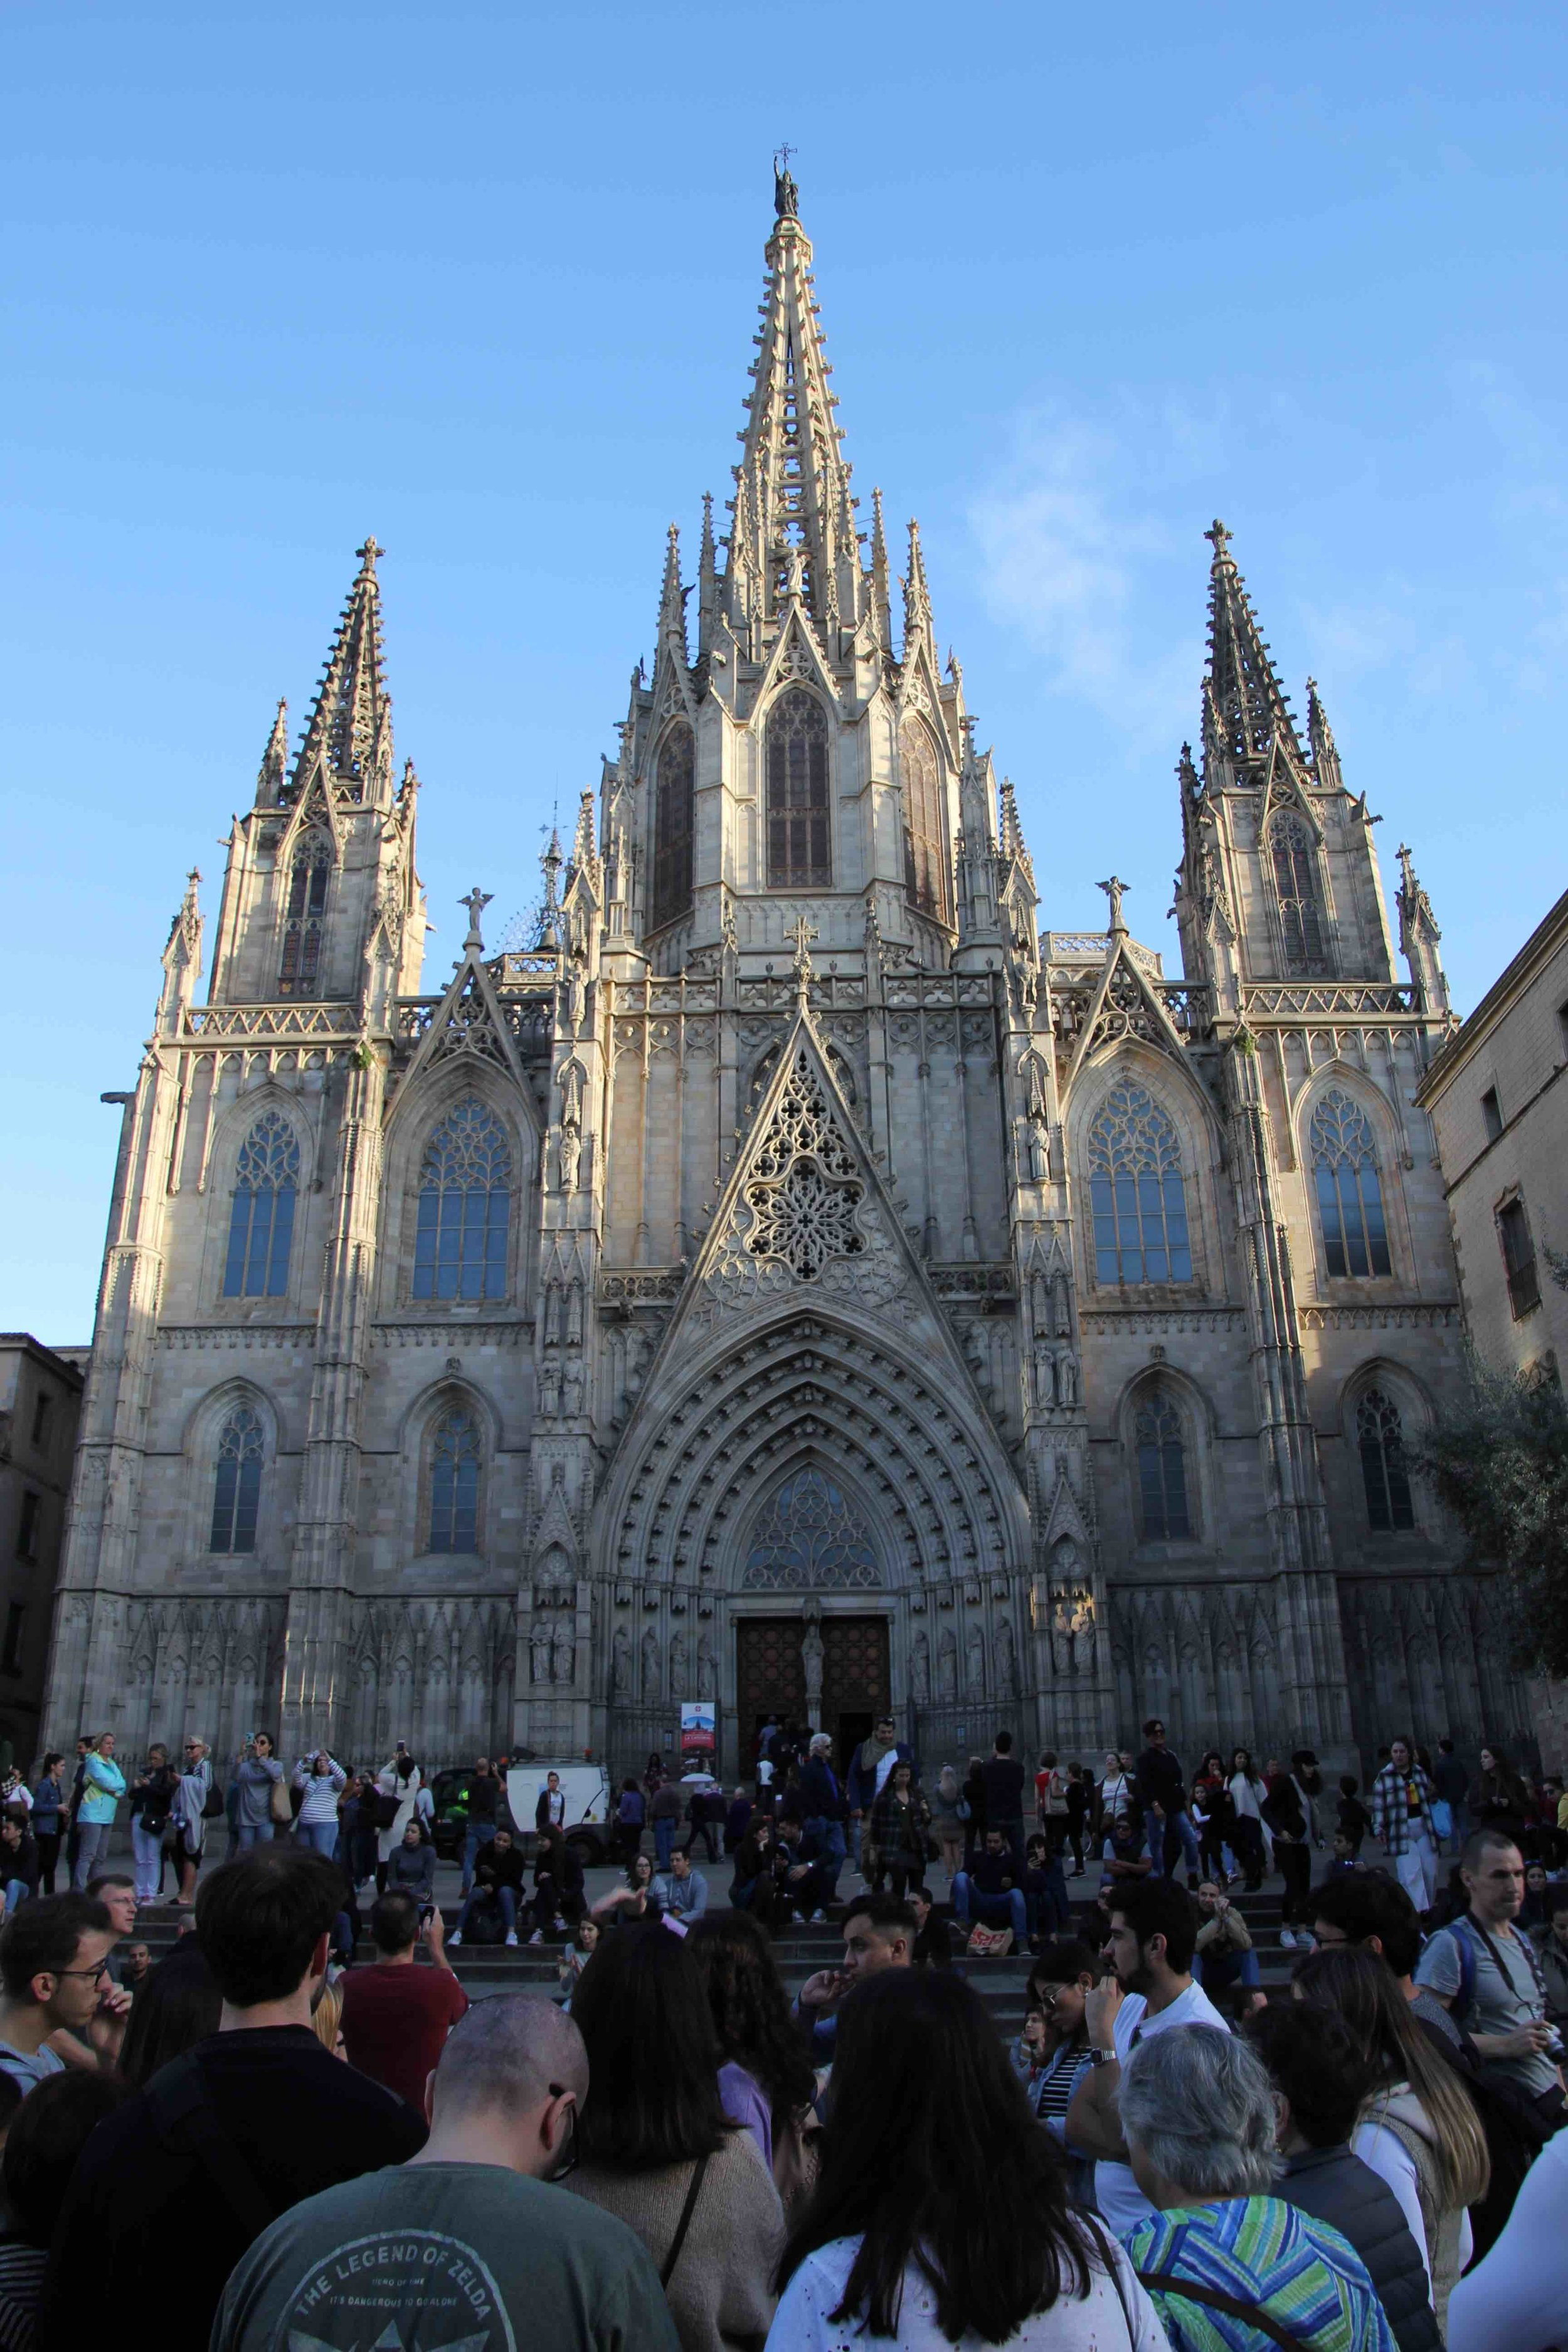 La Catedral in late afternoon